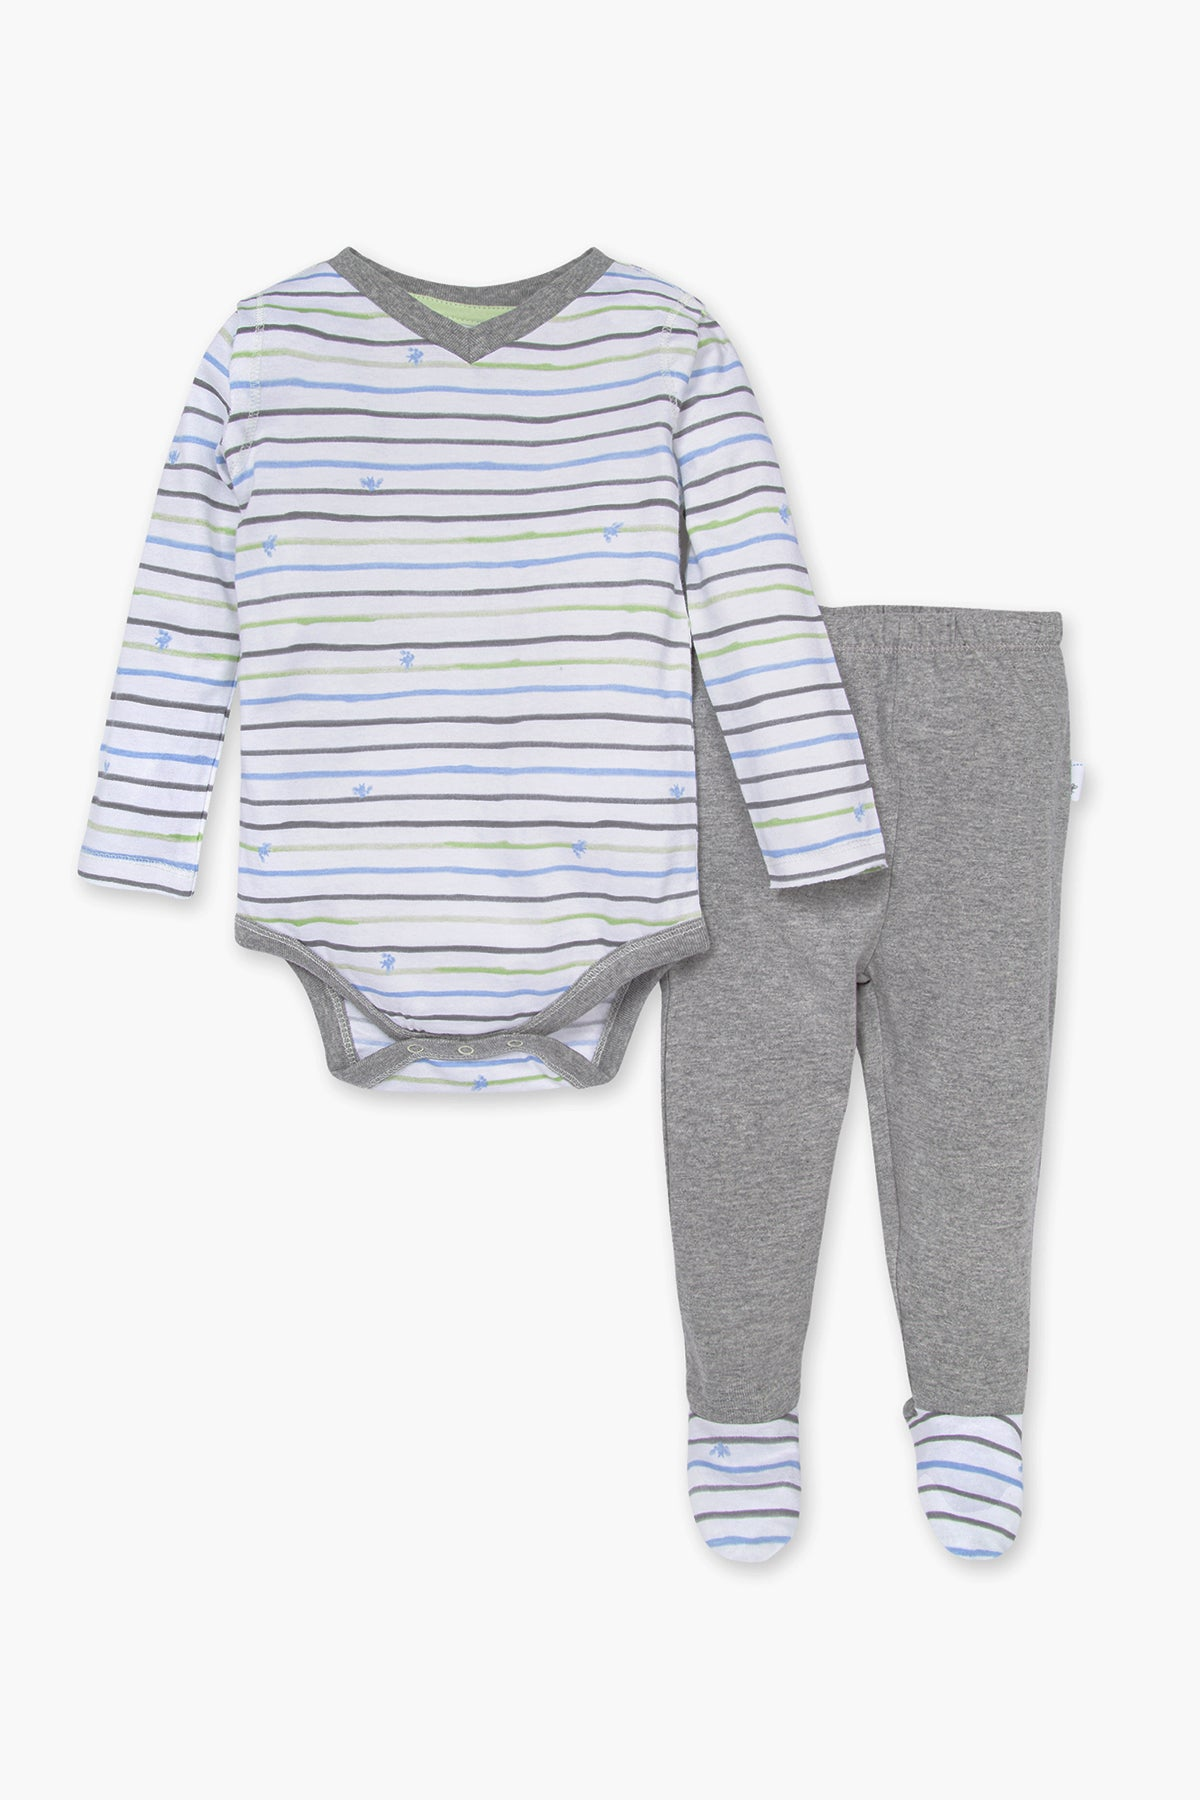 Burt's Bees Watercolor Bee 2-Piece Baby Boys Set